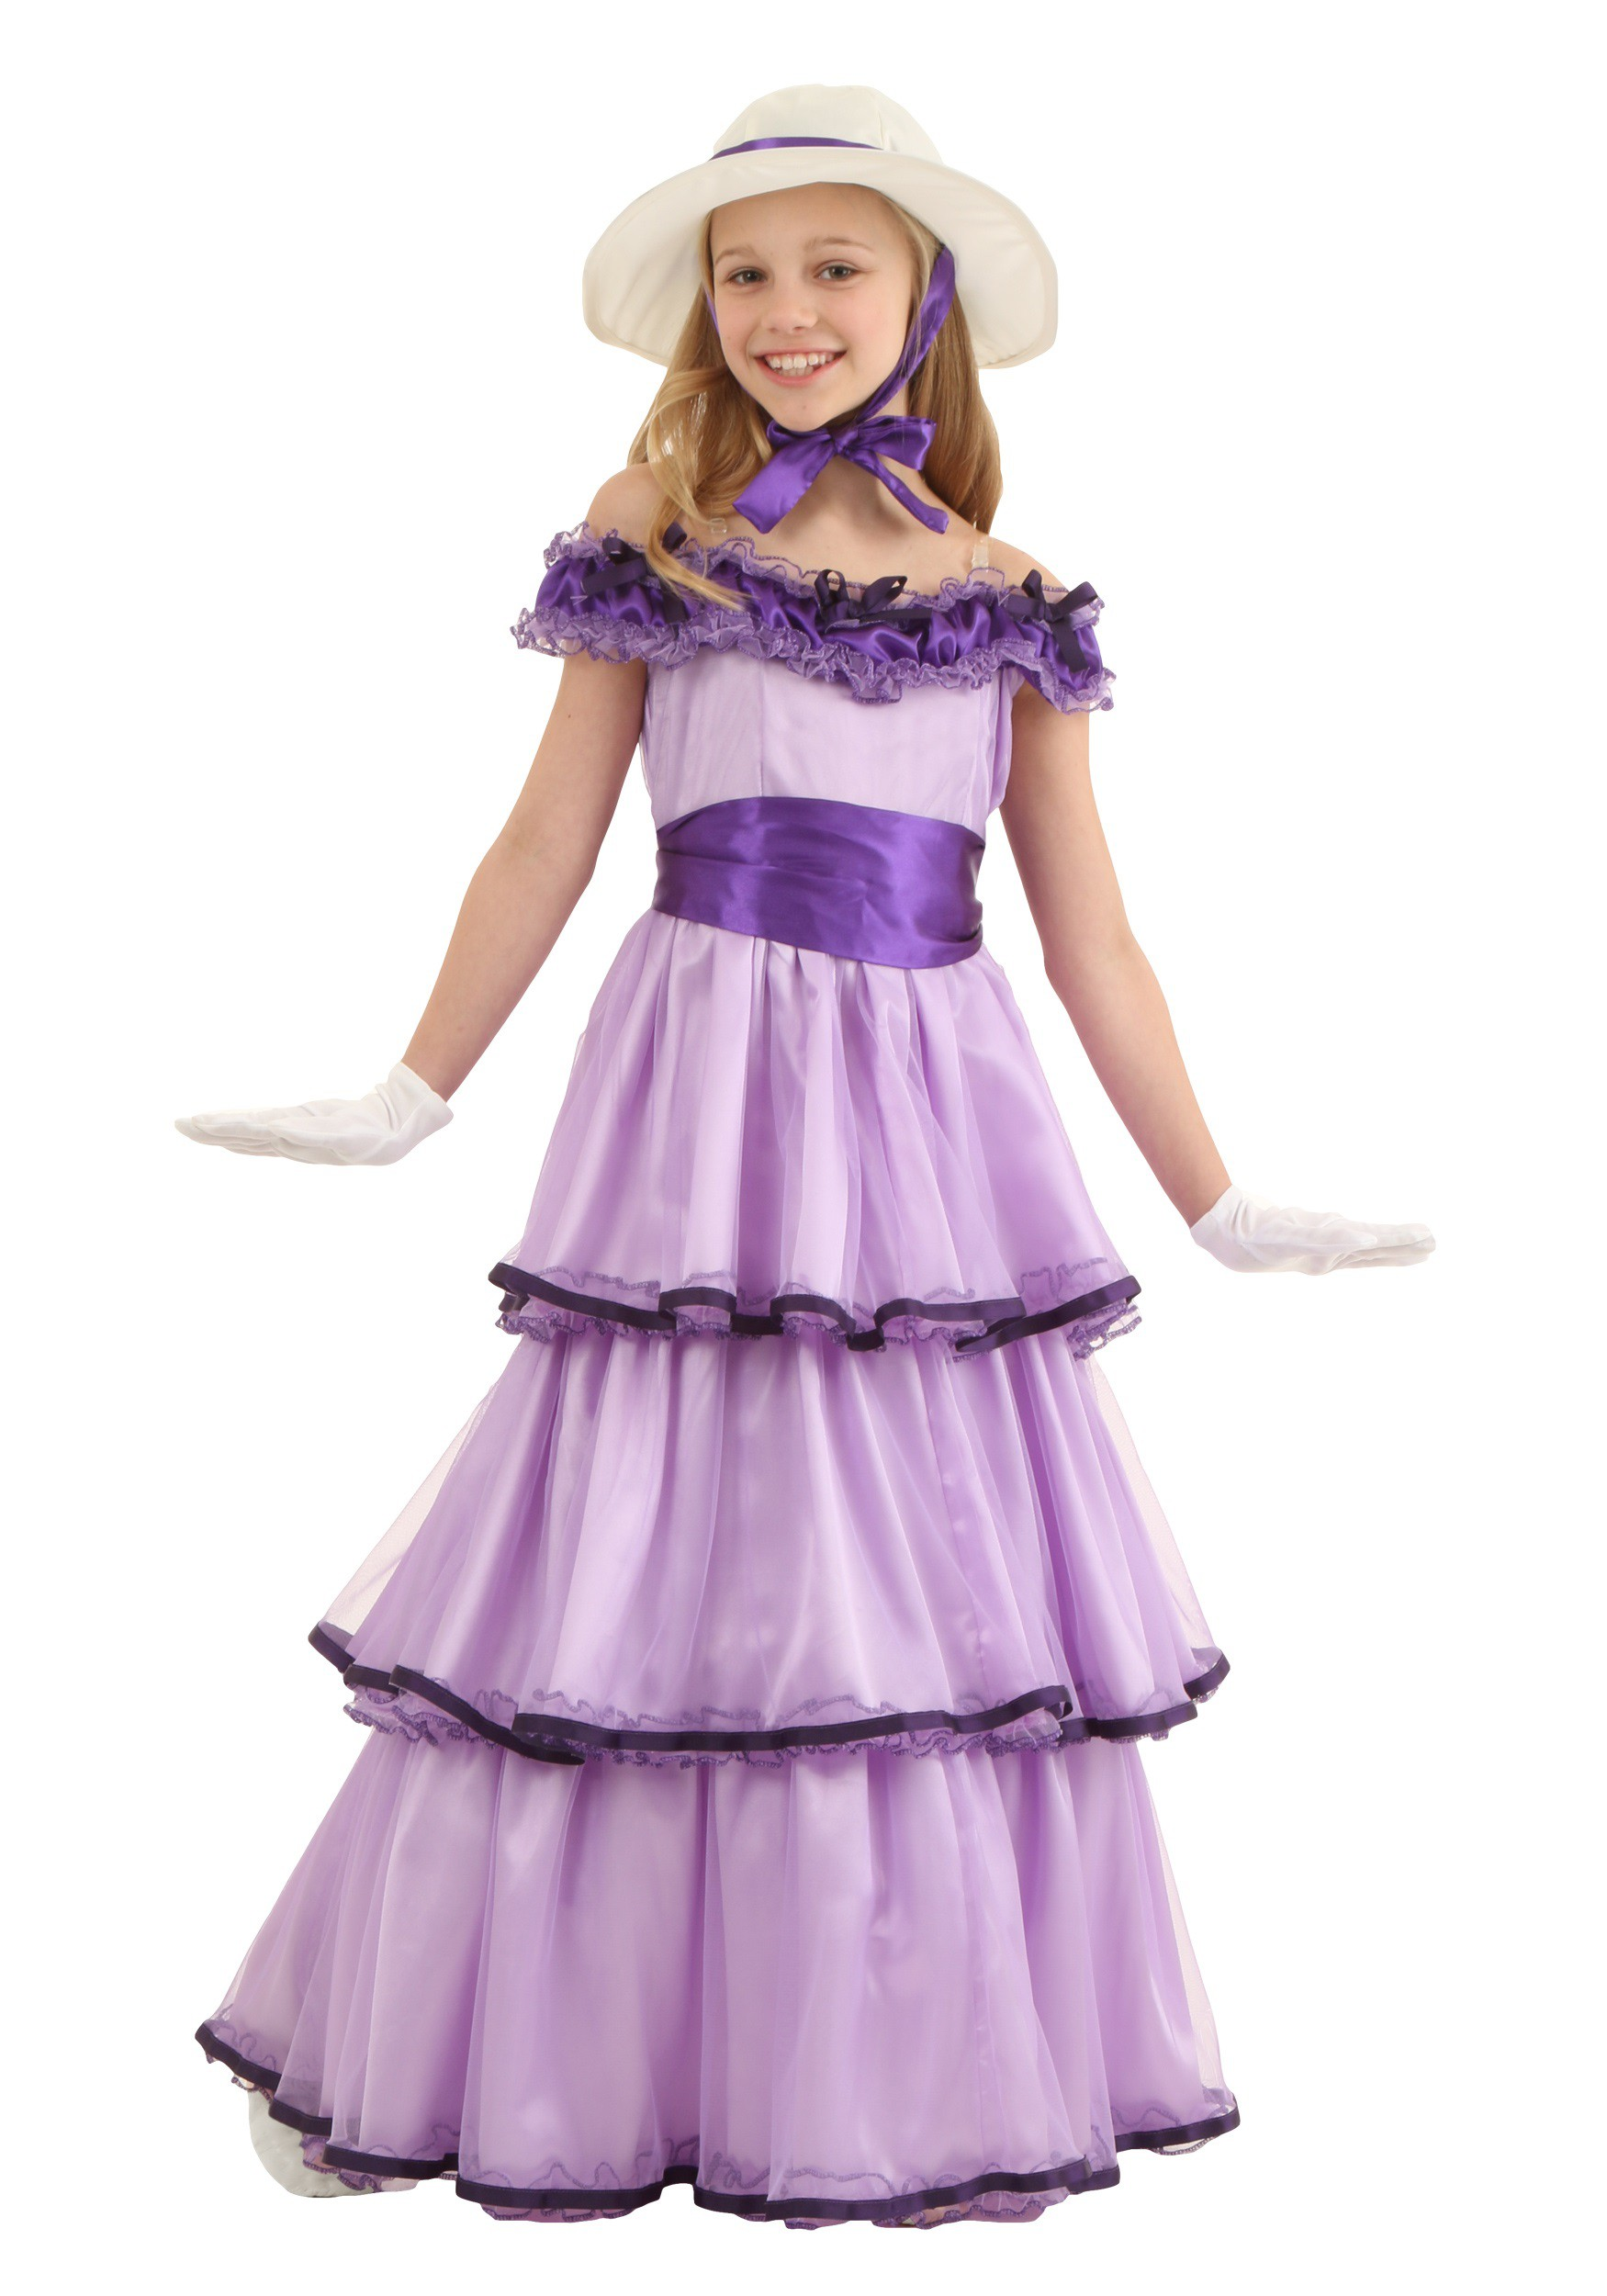 Child Deluxe Southern Belle Costume For Girls